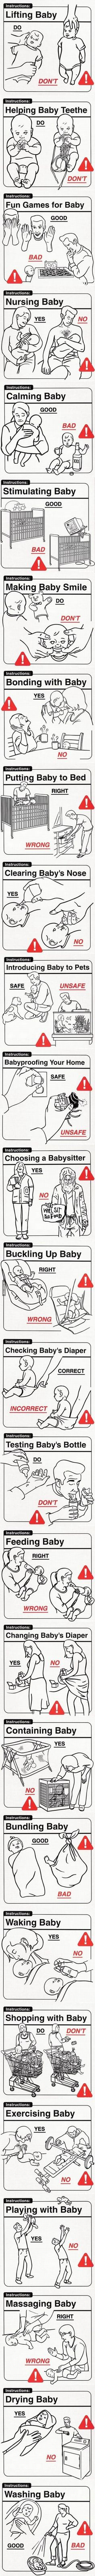 Baby Do's and Don'ts. What to do and NOT when having a #baby.... #fun interesting information mostly for dads. lol